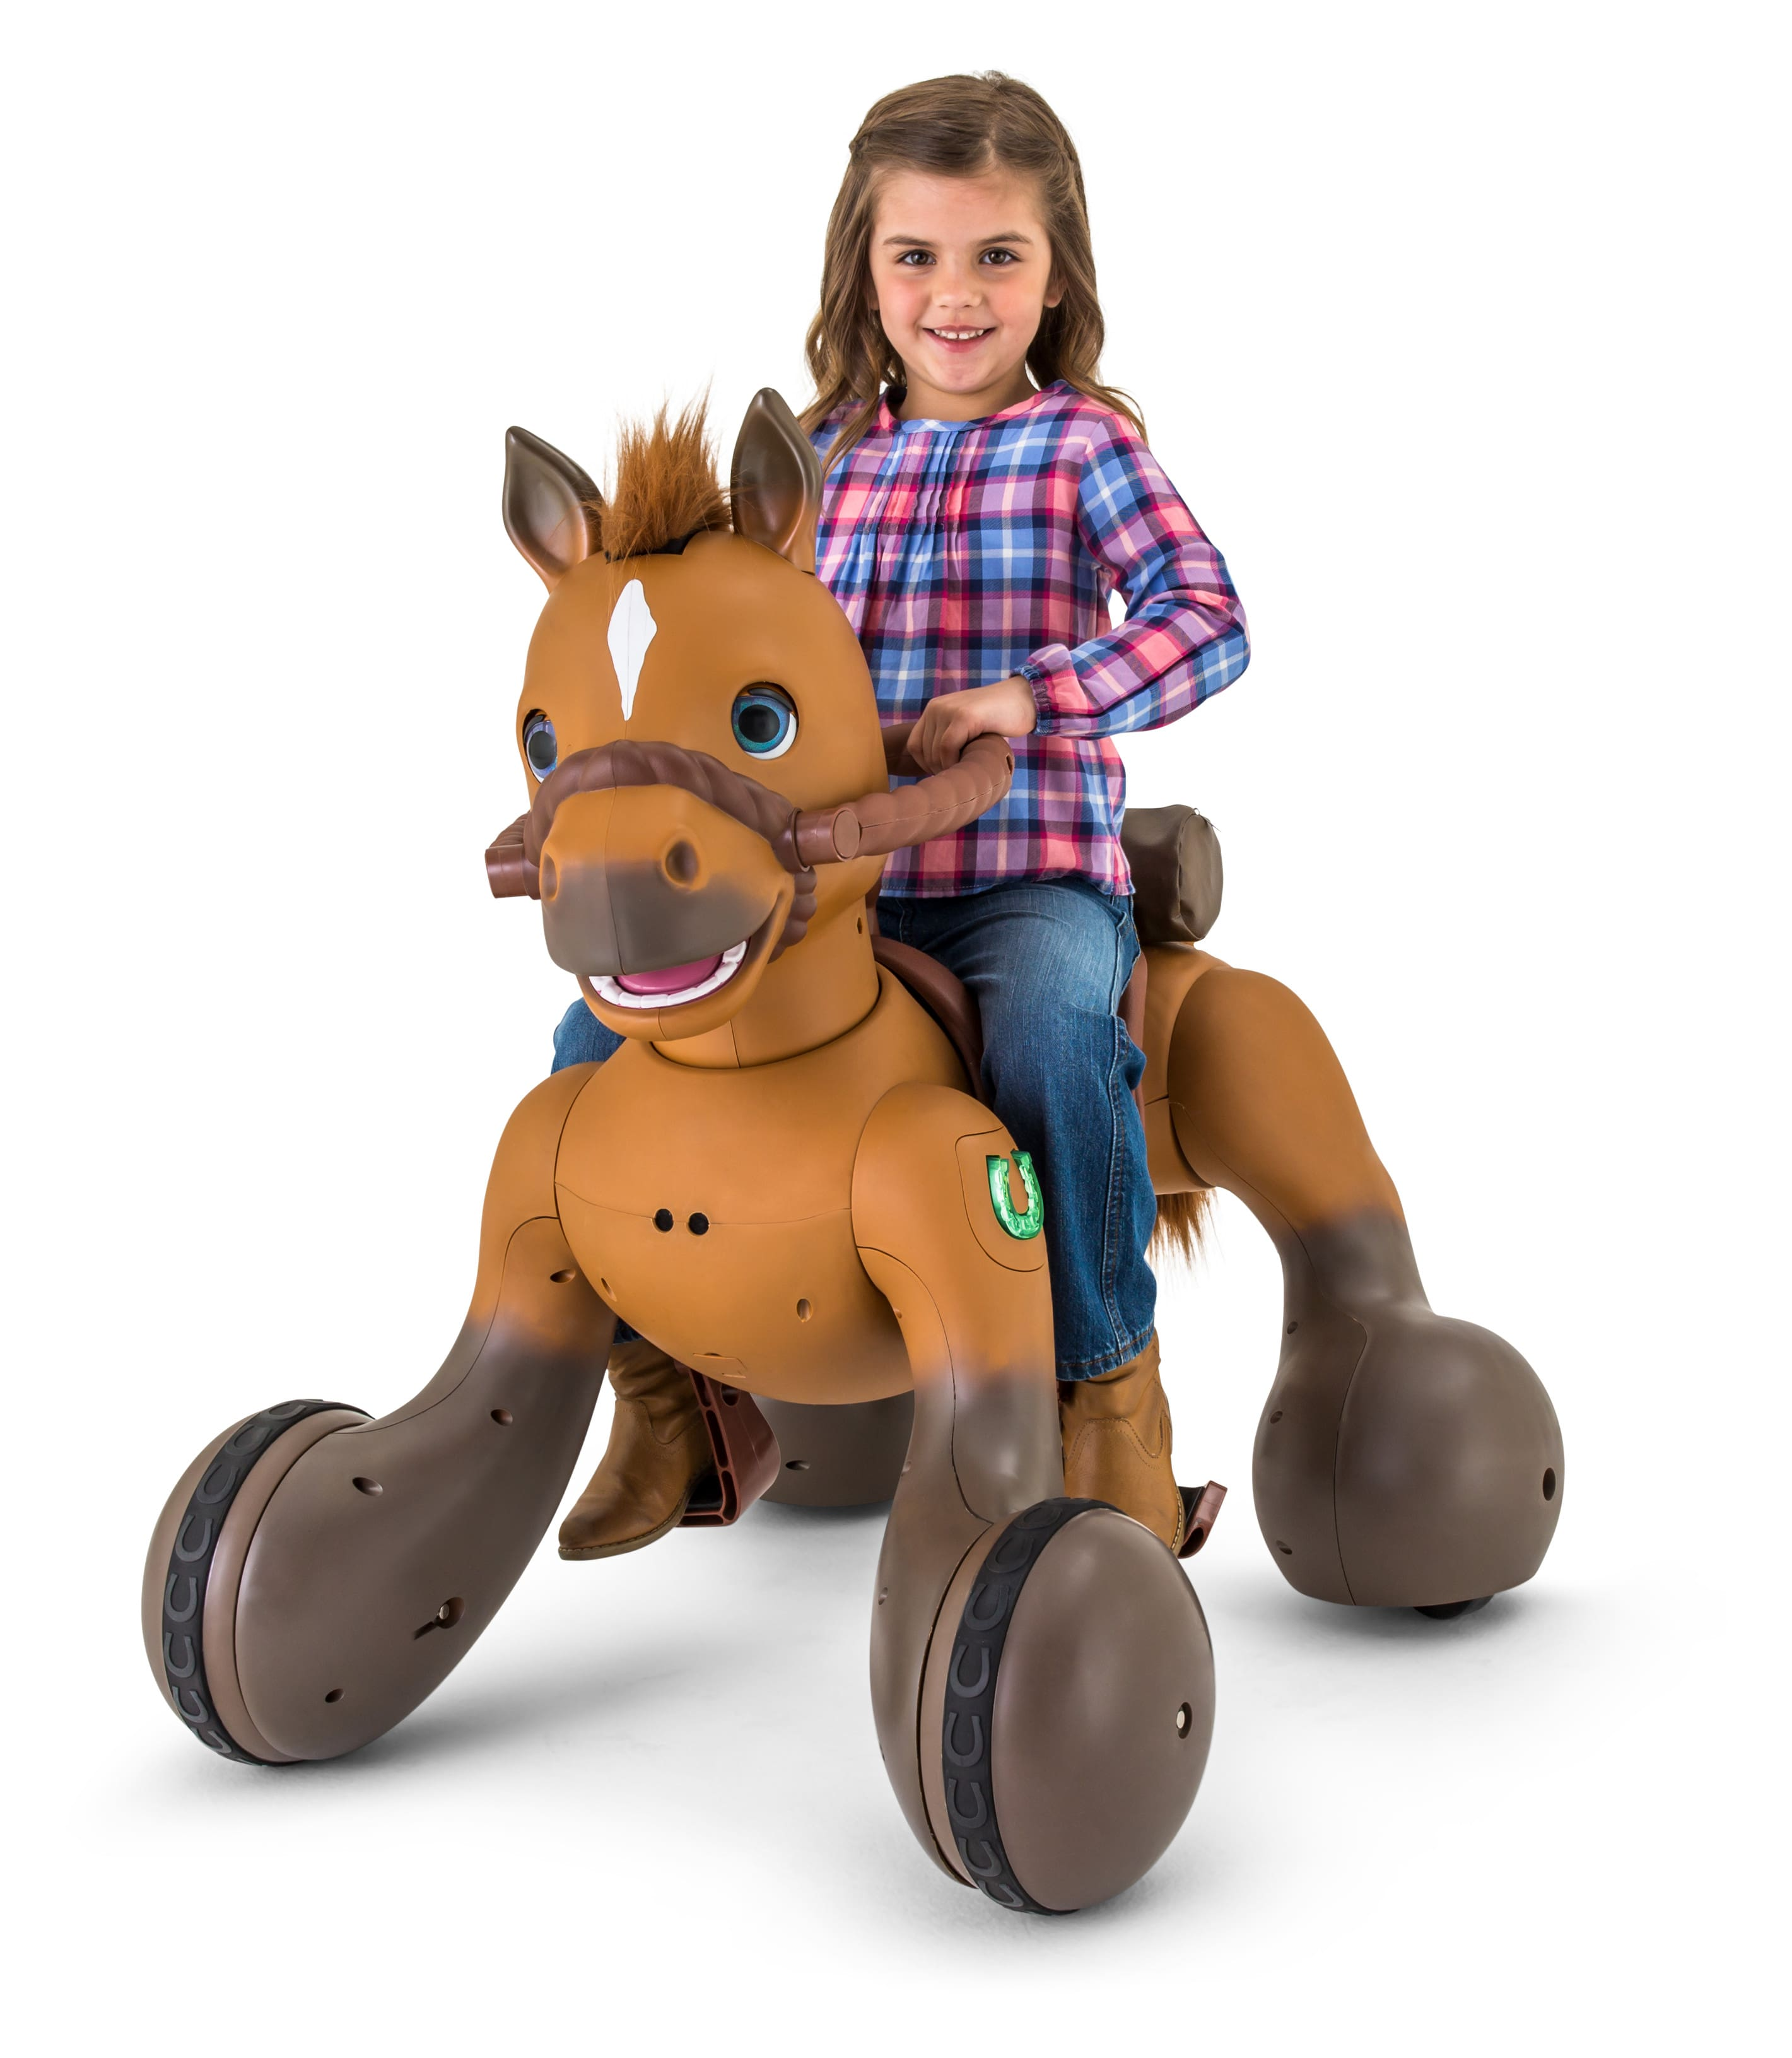 12-Volt Rideamals Scout Pony Interactive Ride-On Toy by Kid Trax $119